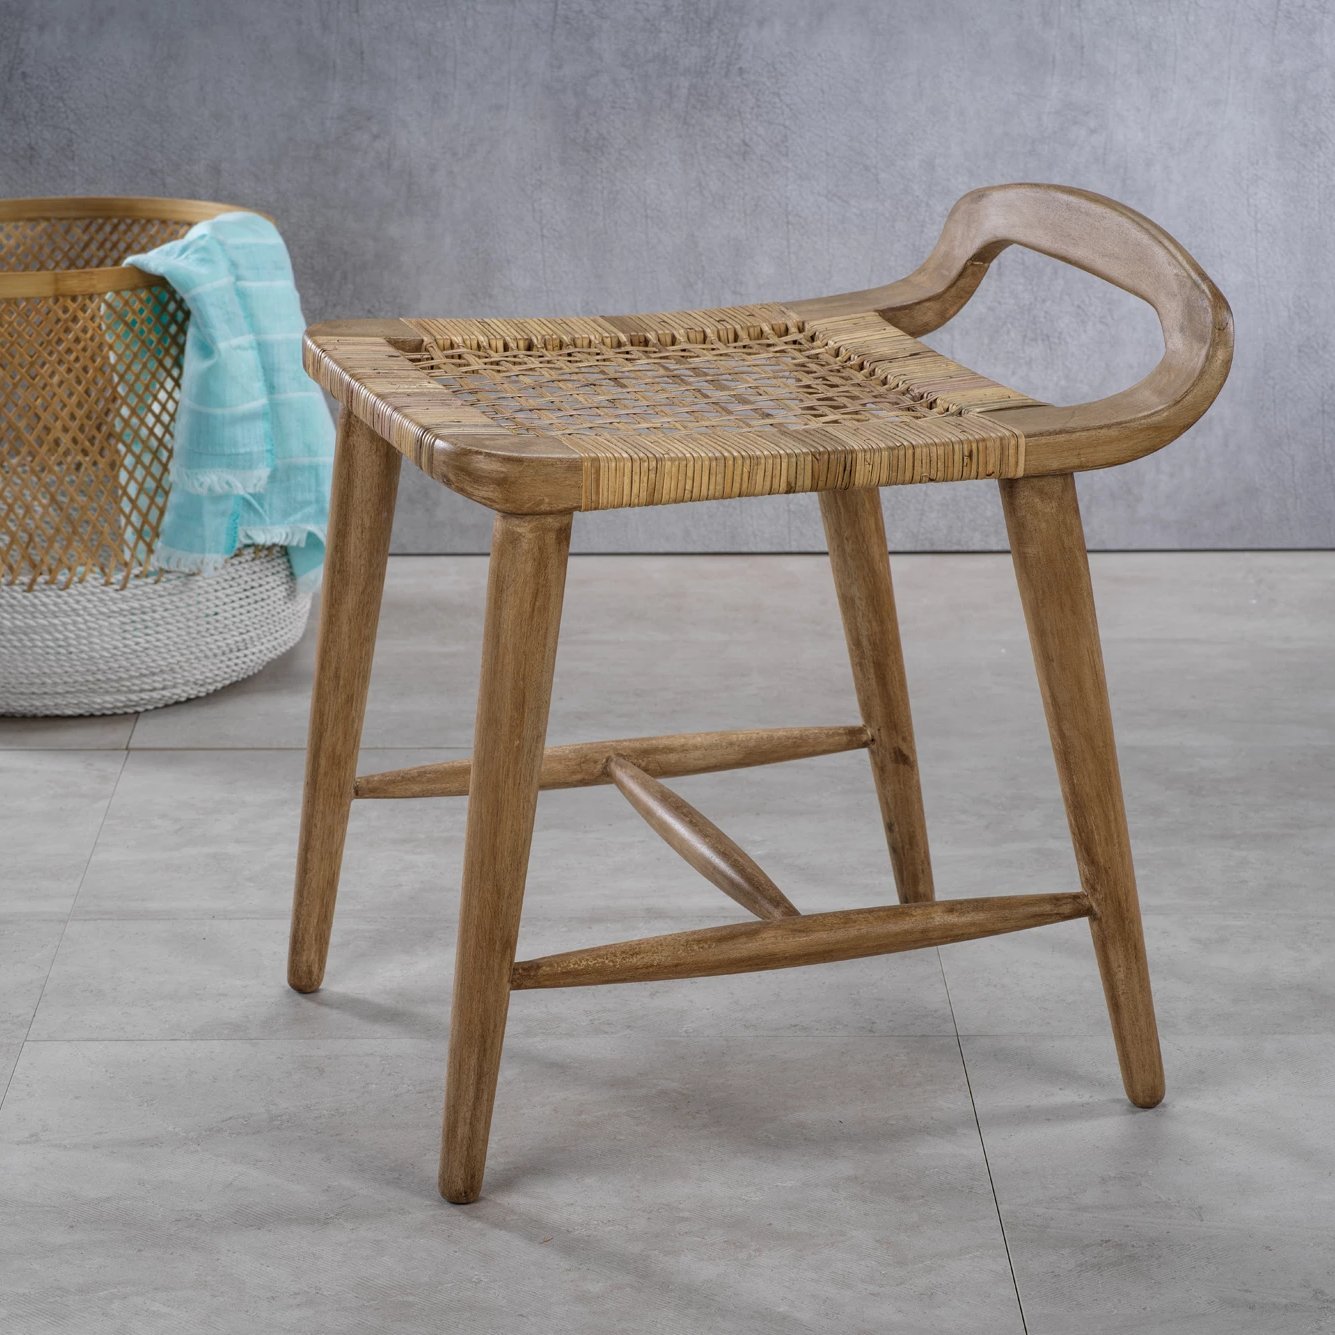 Sand River Mango Wood & Cane Side Stool - CARLYLE AVENUE